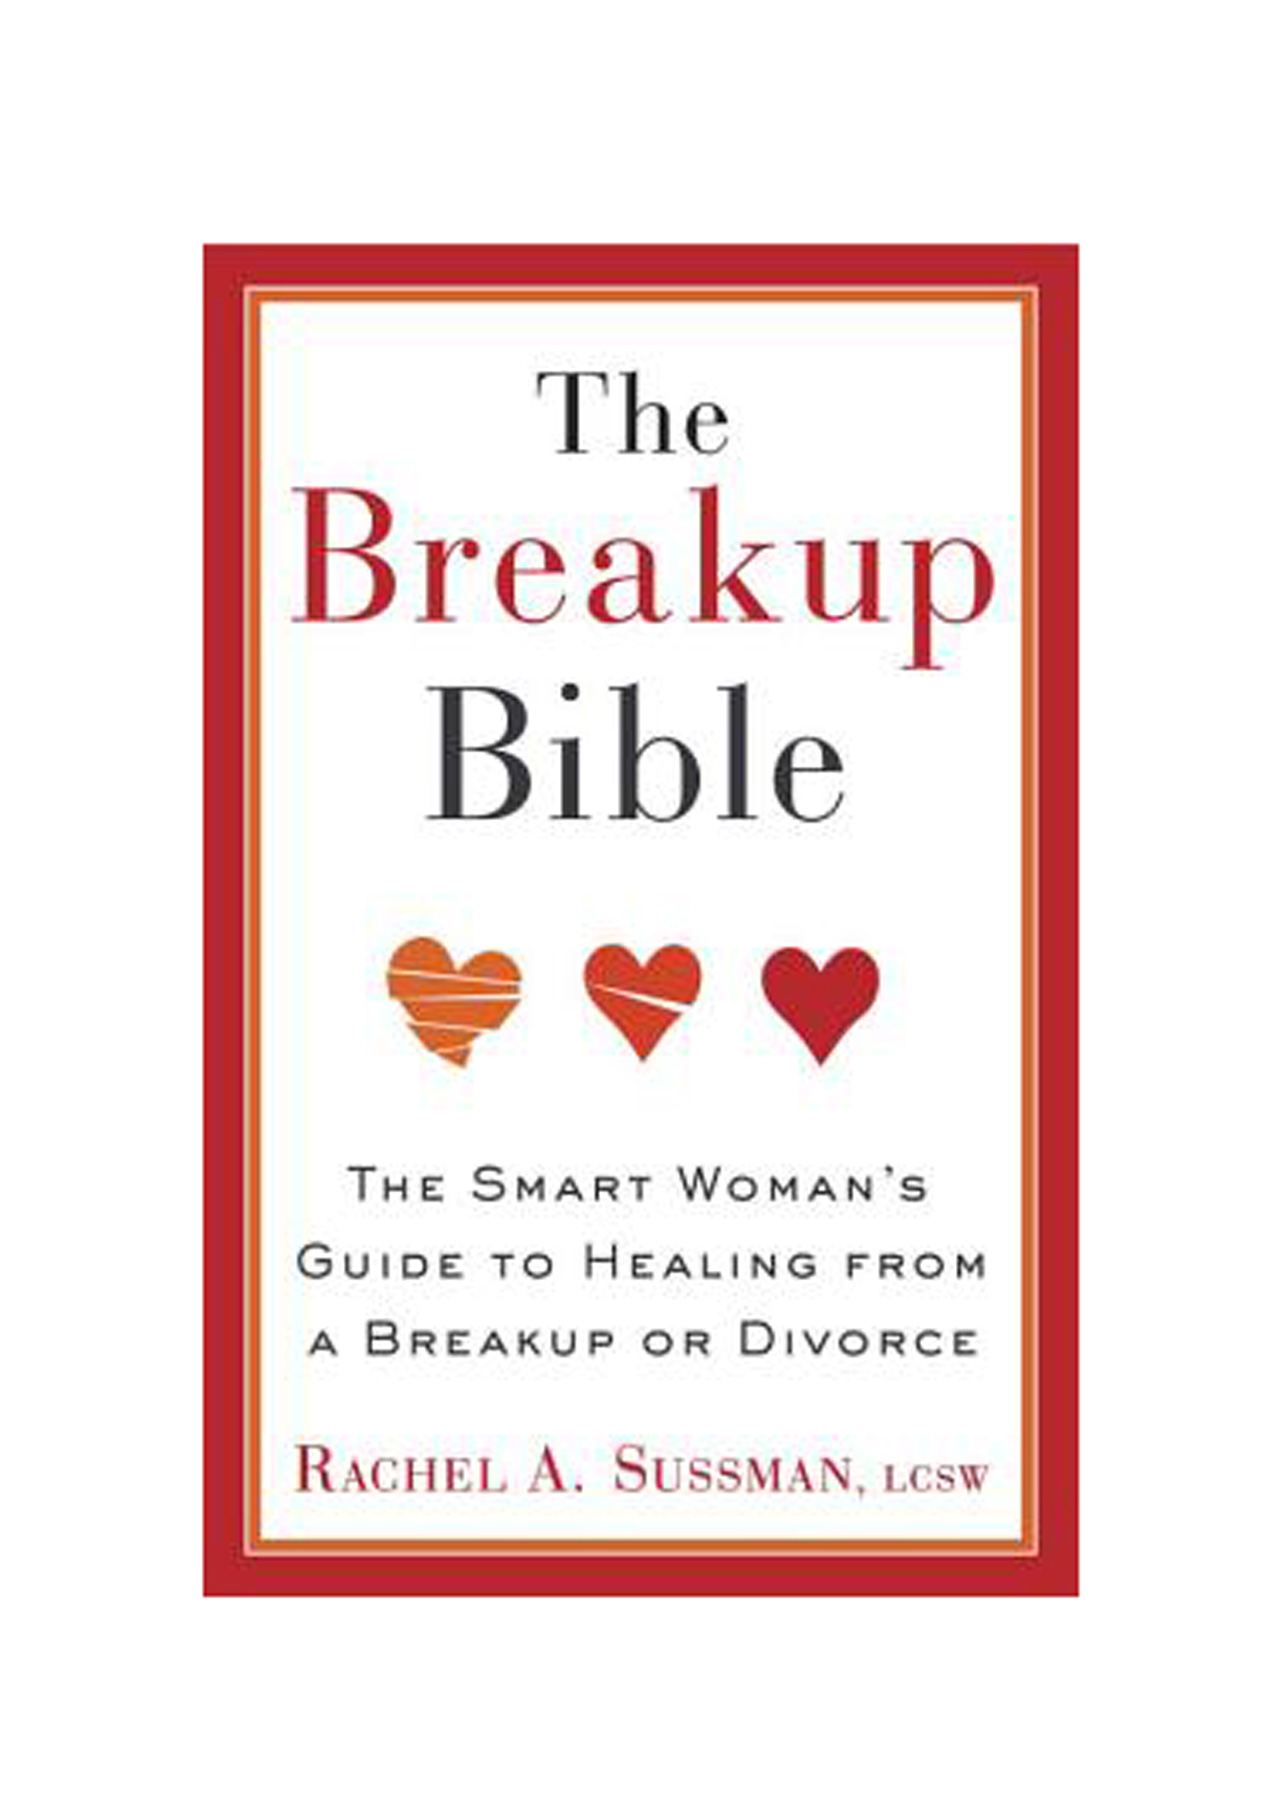 Books for Breakups: The Breakup Bible: The Smart Woman's Guide to Healing from a Breakup or Divorce, by Rachel Sussman